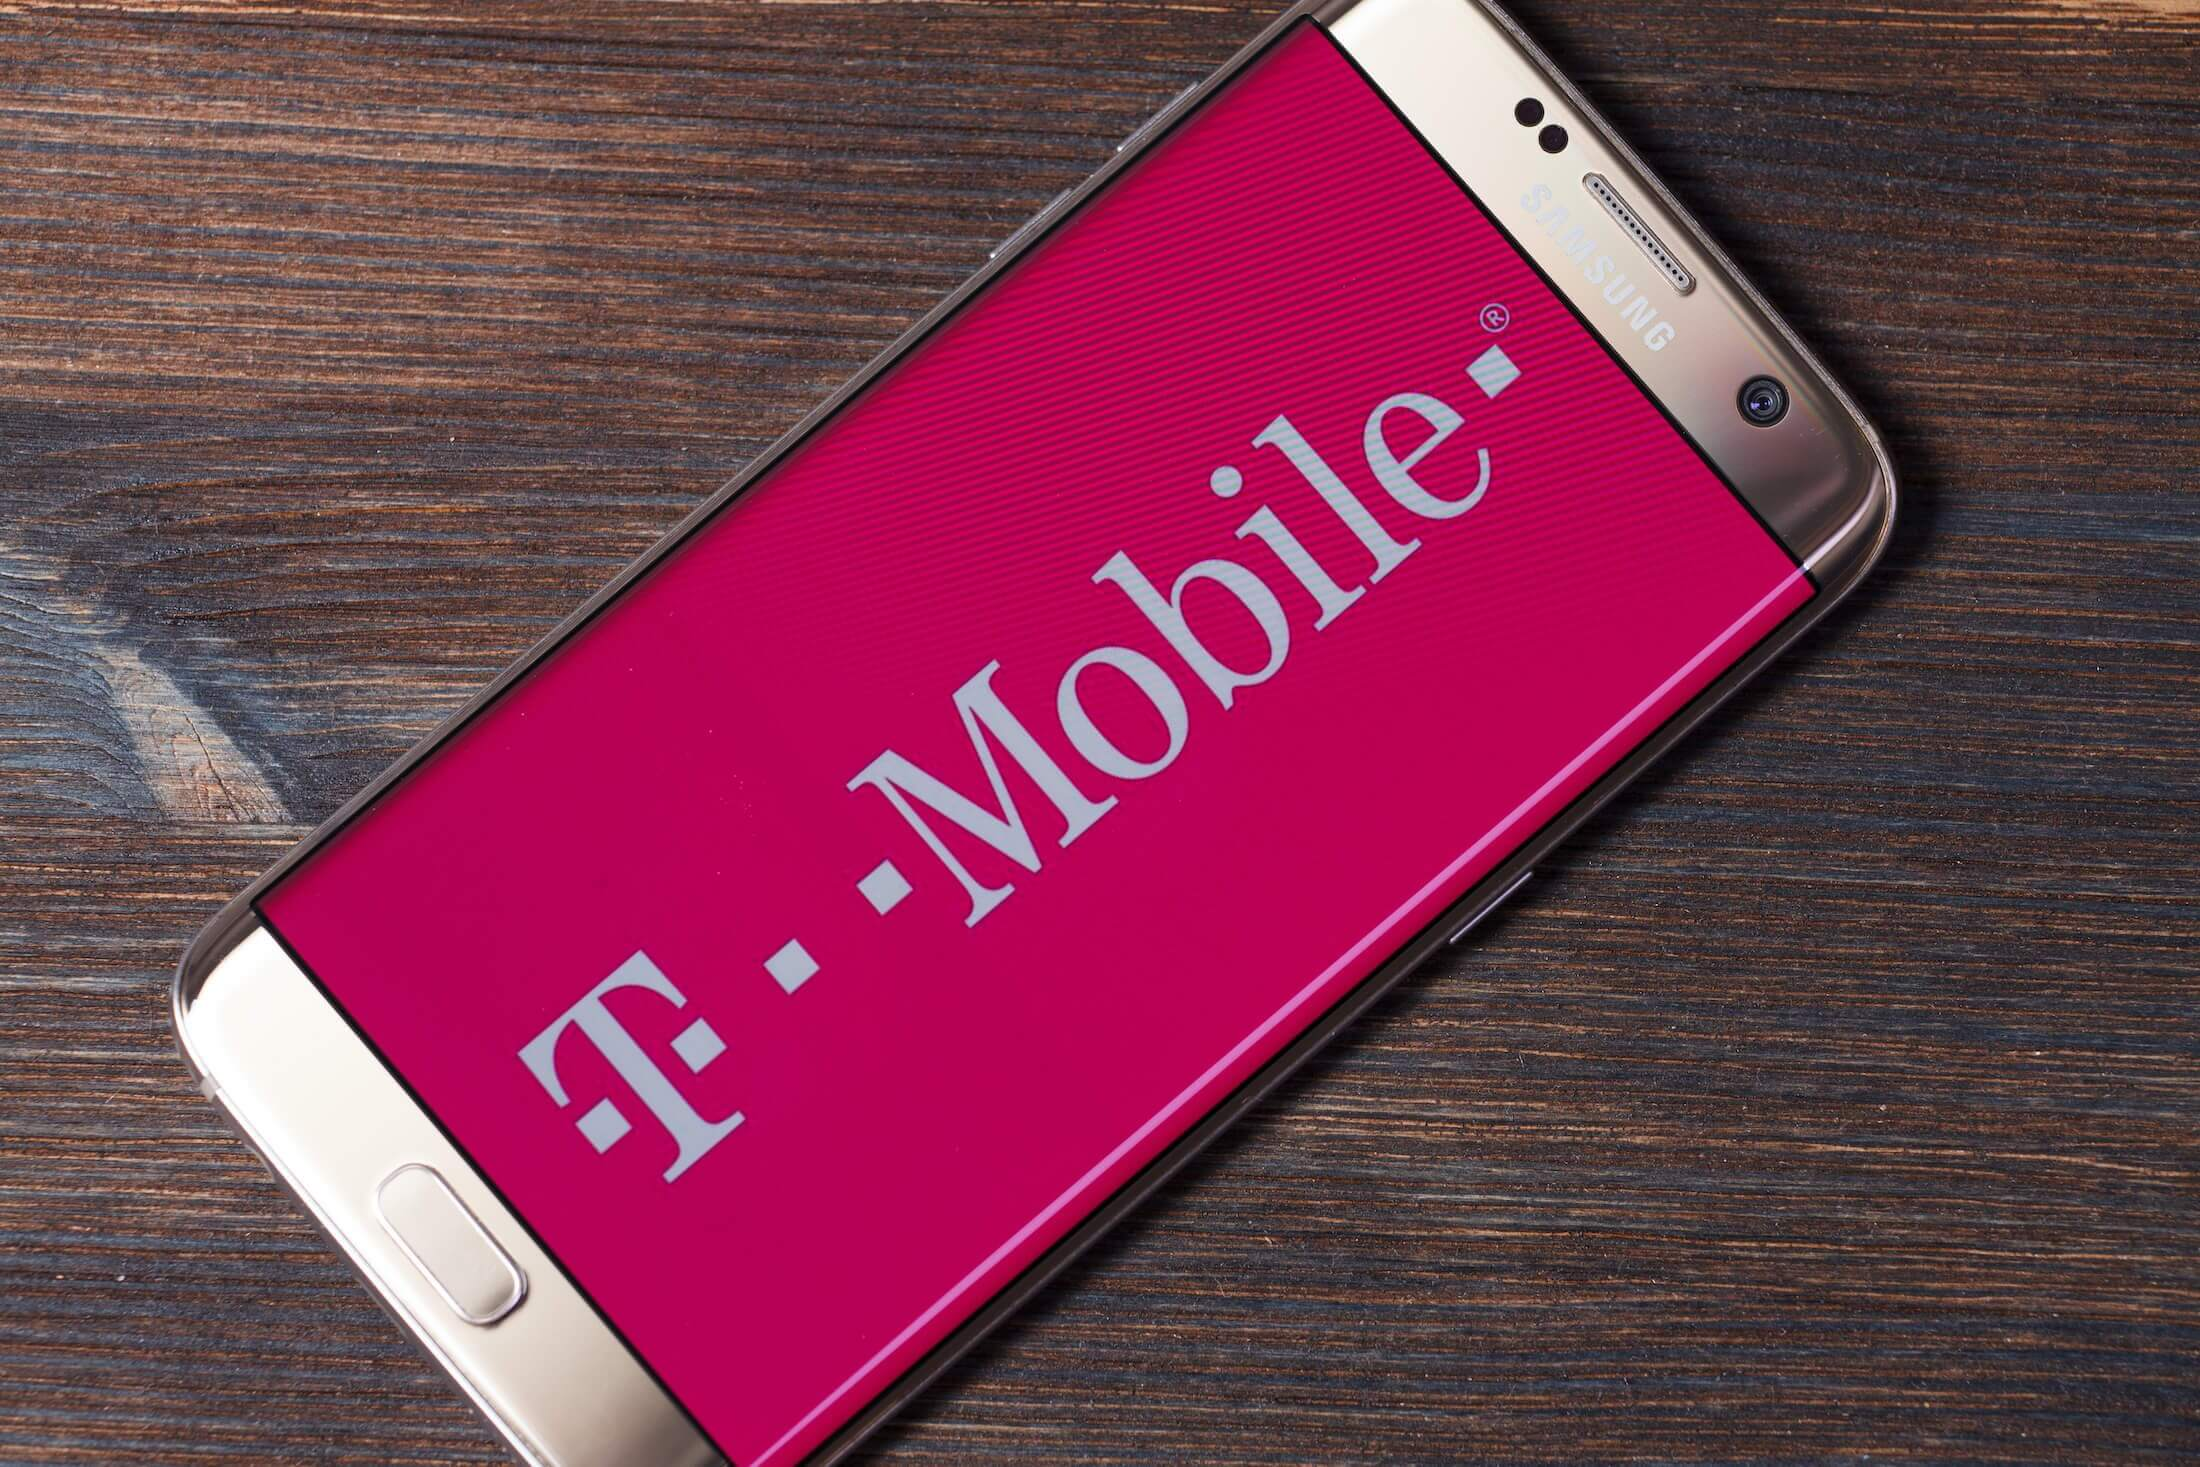 T-Mobile joins the war on robocalls with Scam Shield mobile app